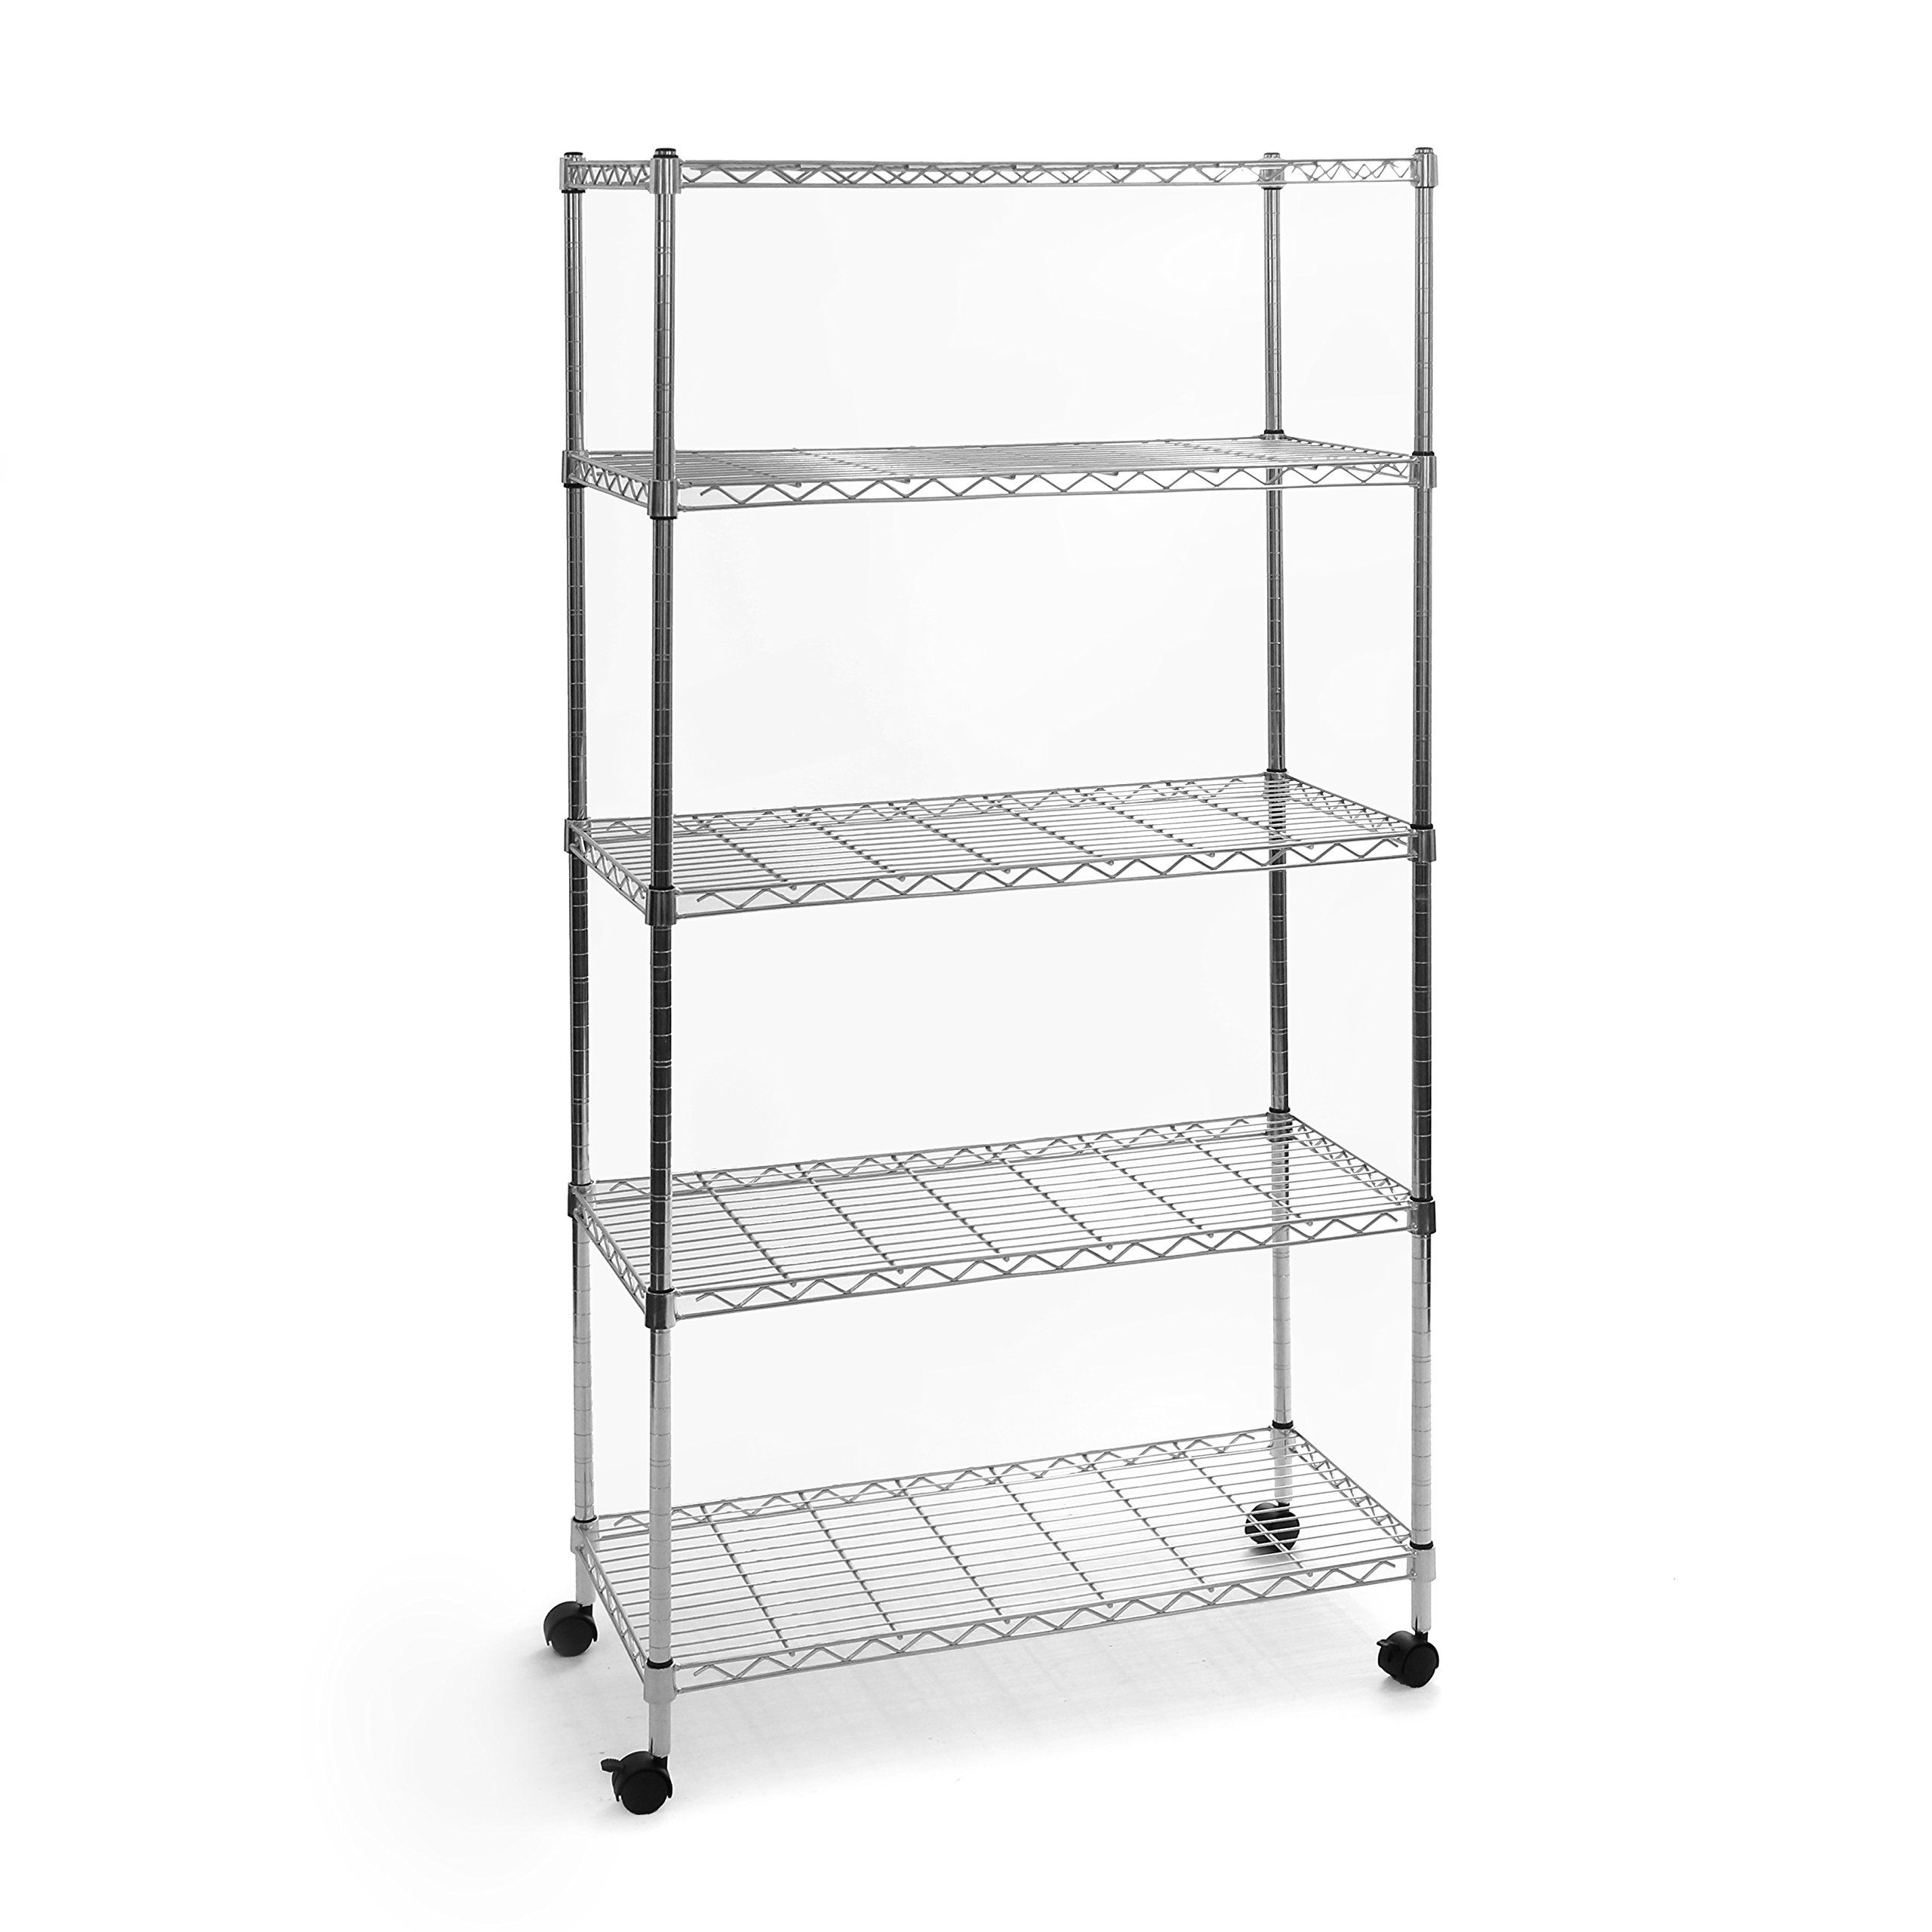 Seville Classics 5 Tier Ultrazinc Steel Wire Shelving W Wheels 14 D X 30 W X60 H Wire Shelving Shelving Metal Shelving Units